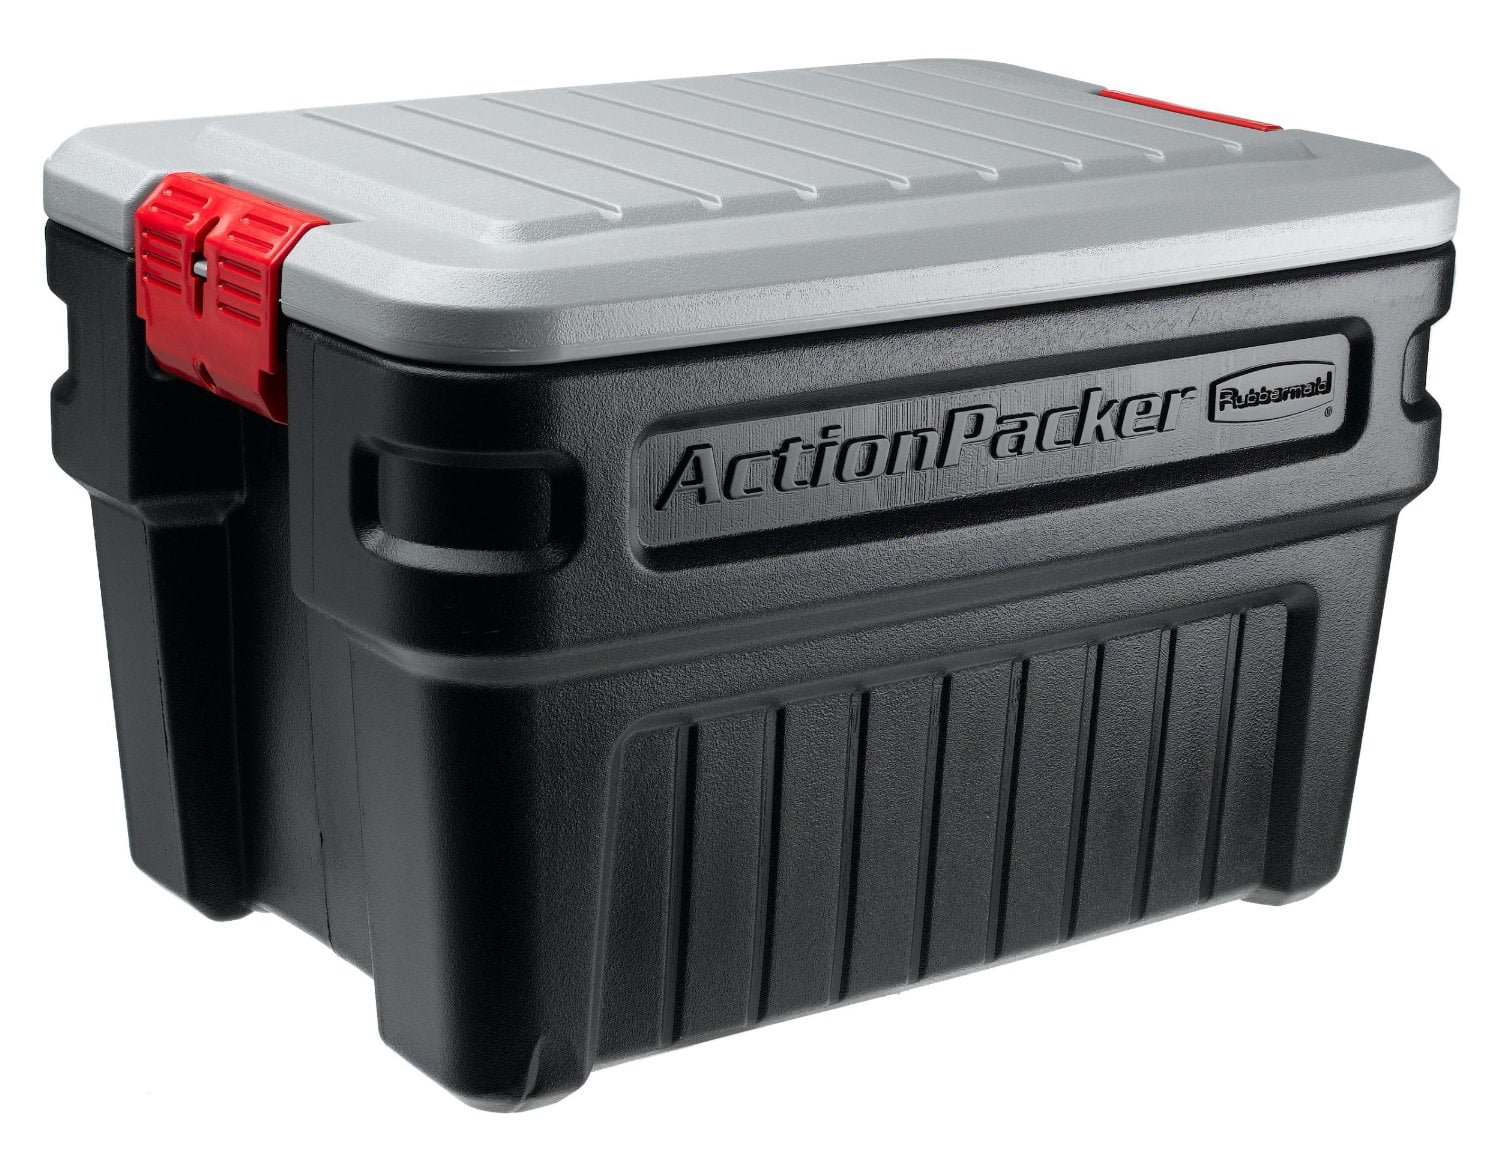 Rubbermaid FG11720238 24 Gallon ActionPacker?? Storage Container - Walmart.com  sc 1 st  Walmart & Rubbermaid FG11720238 24 Gallon ActionPacker?? Storage Container ...